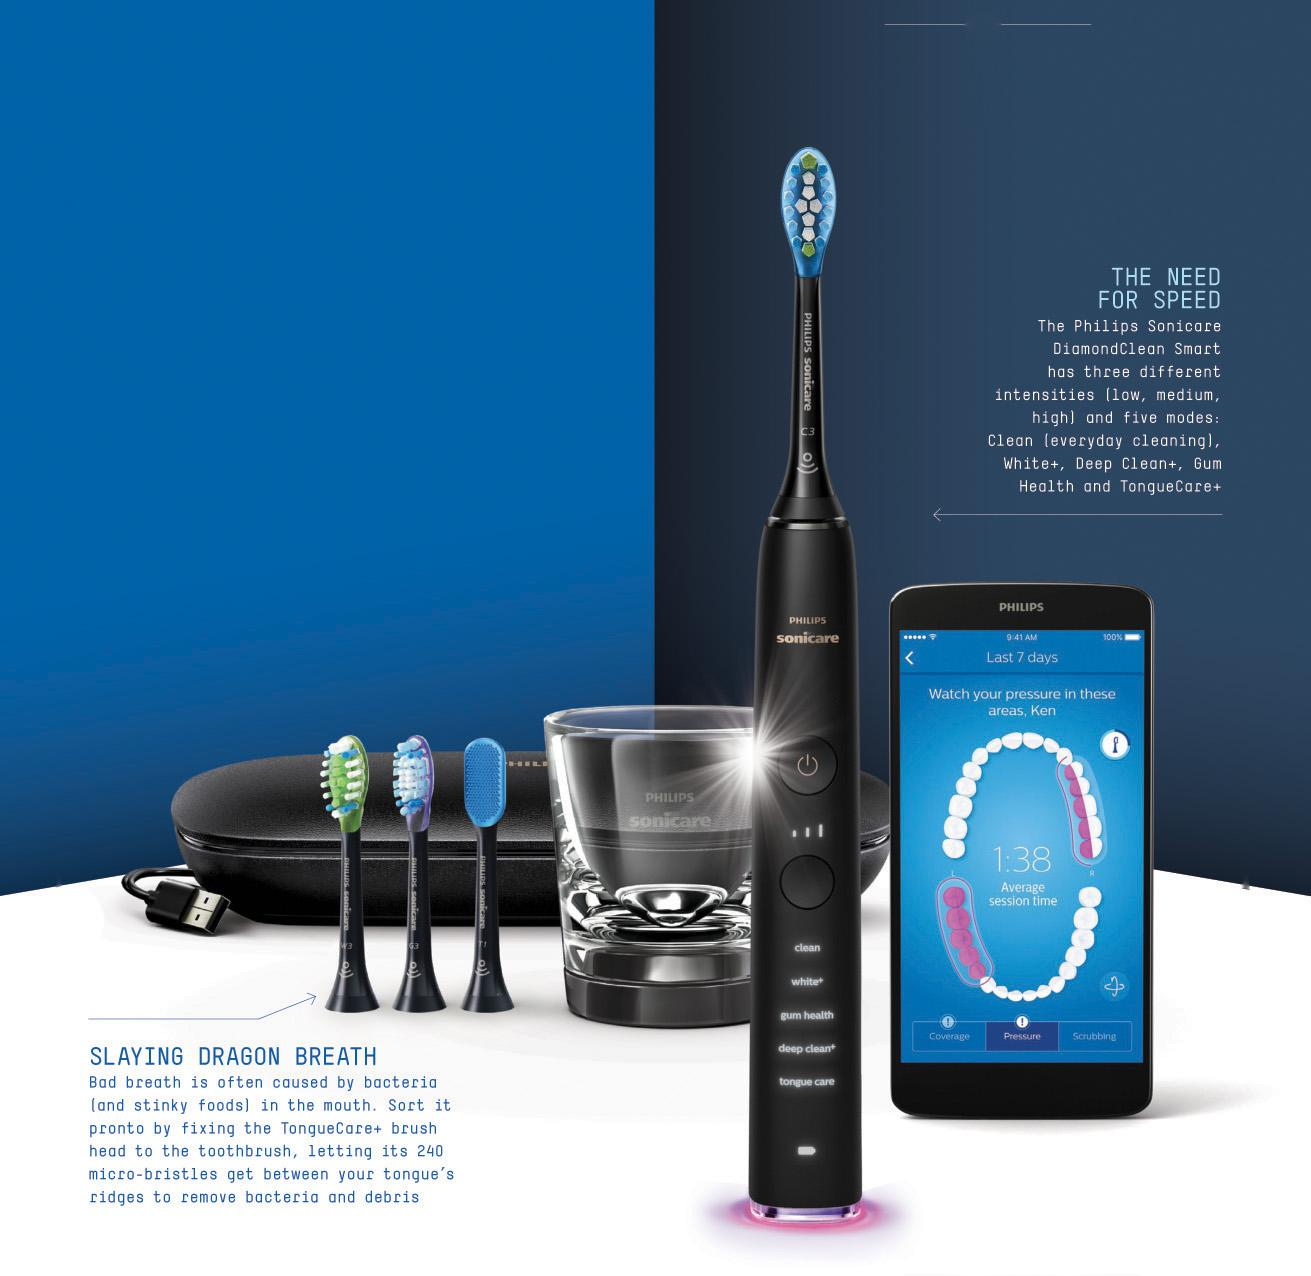 philips sonicare diamondclean smart scribd. Black Bedroom Furniture Sets. Home Design Ideas